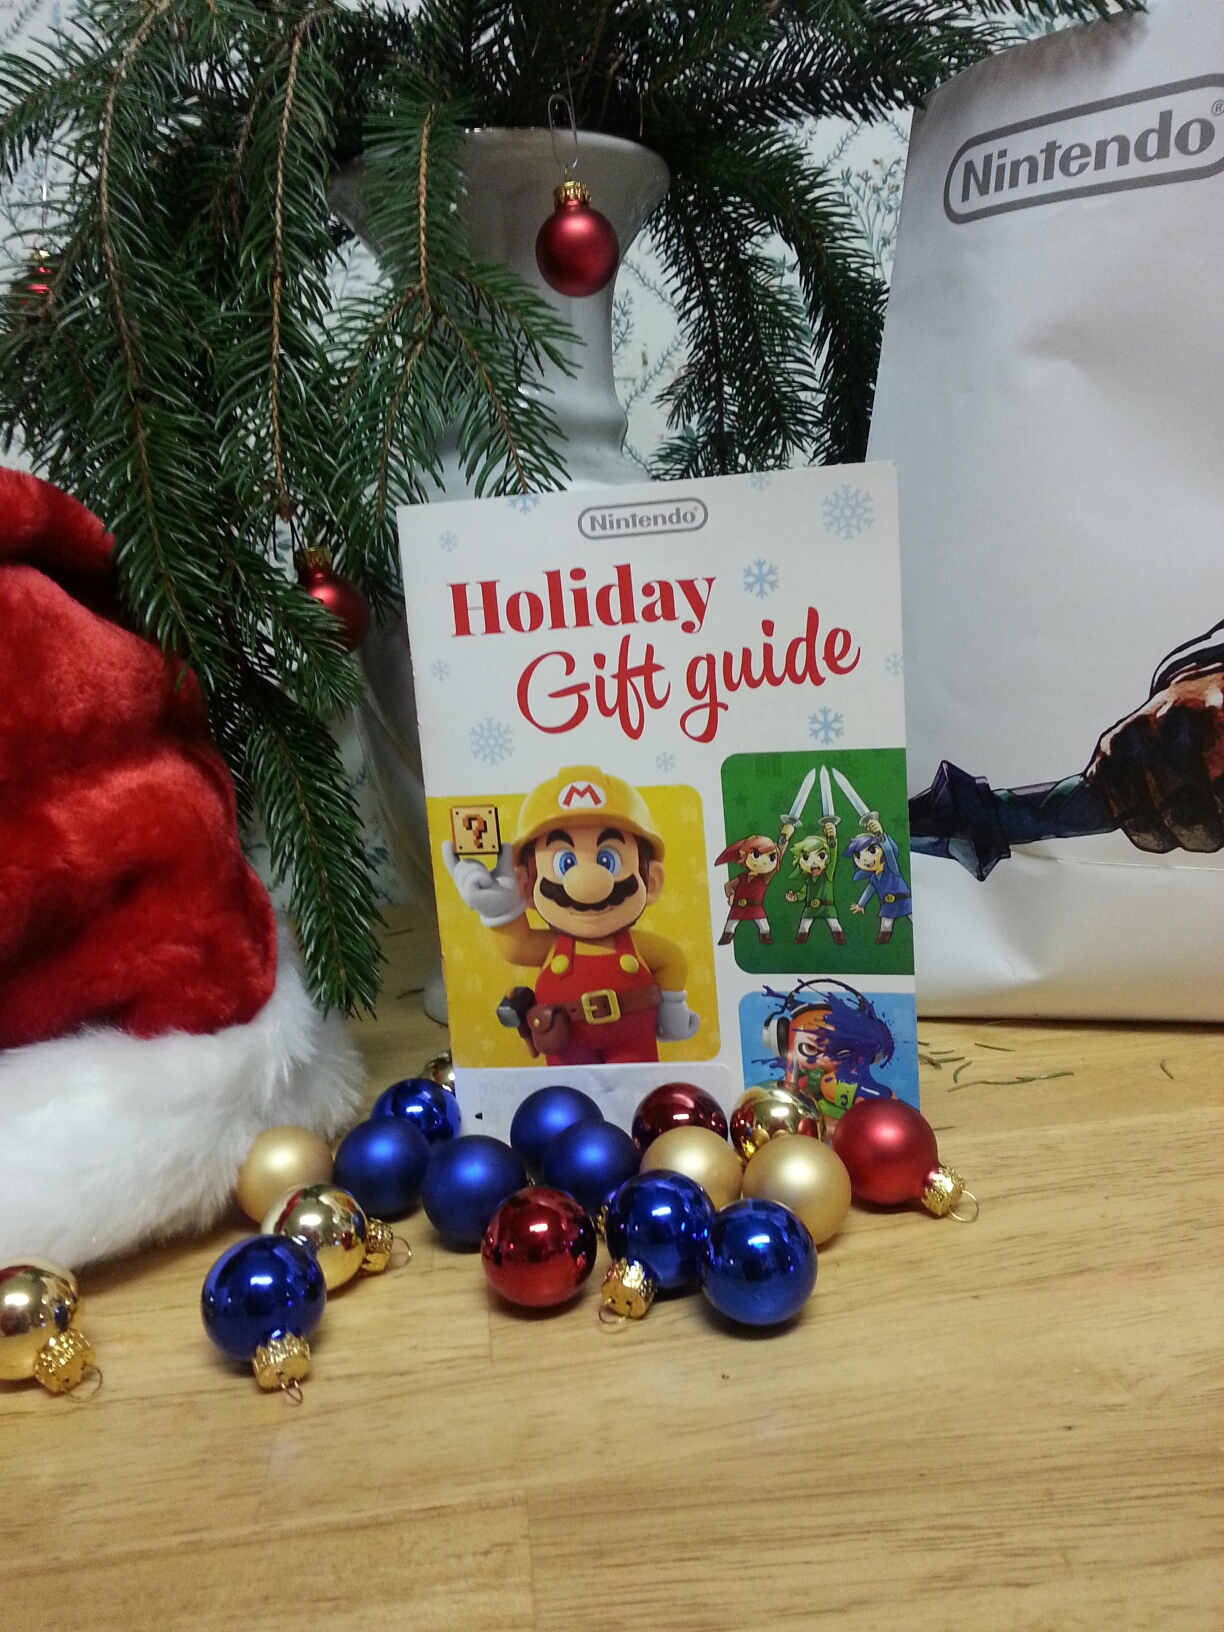 Calling All Gamers! Our #NintendoKidReviewers Gift Guide! @Nintendo